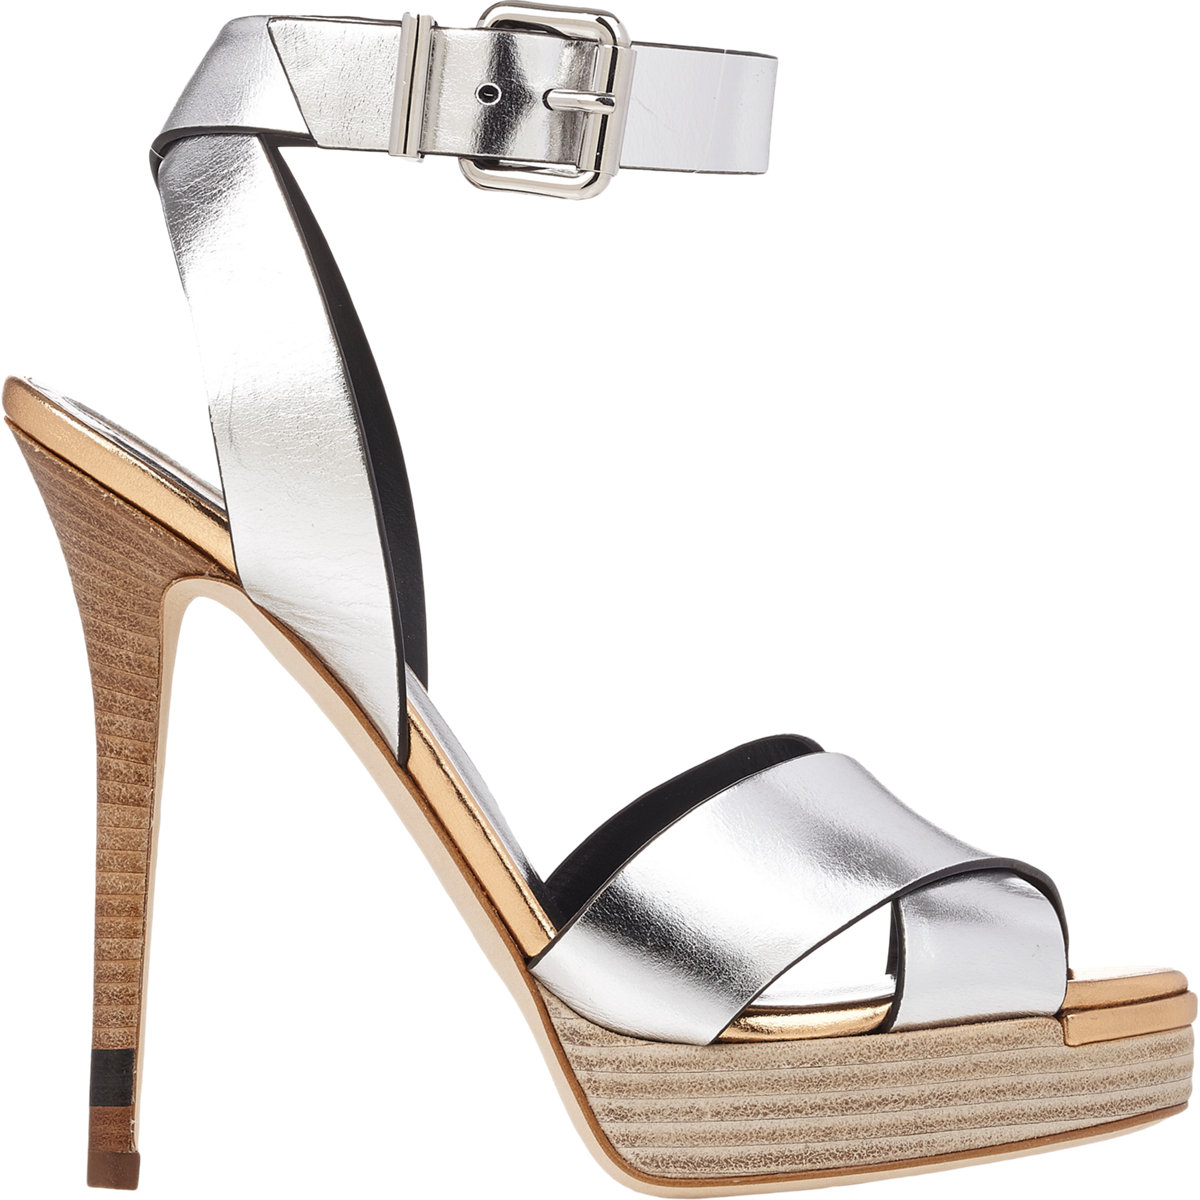 purchase for sale outlet get authentic Fendi Platform Ankle Strap Sandals for sale online cheap comfortable 7iwDC